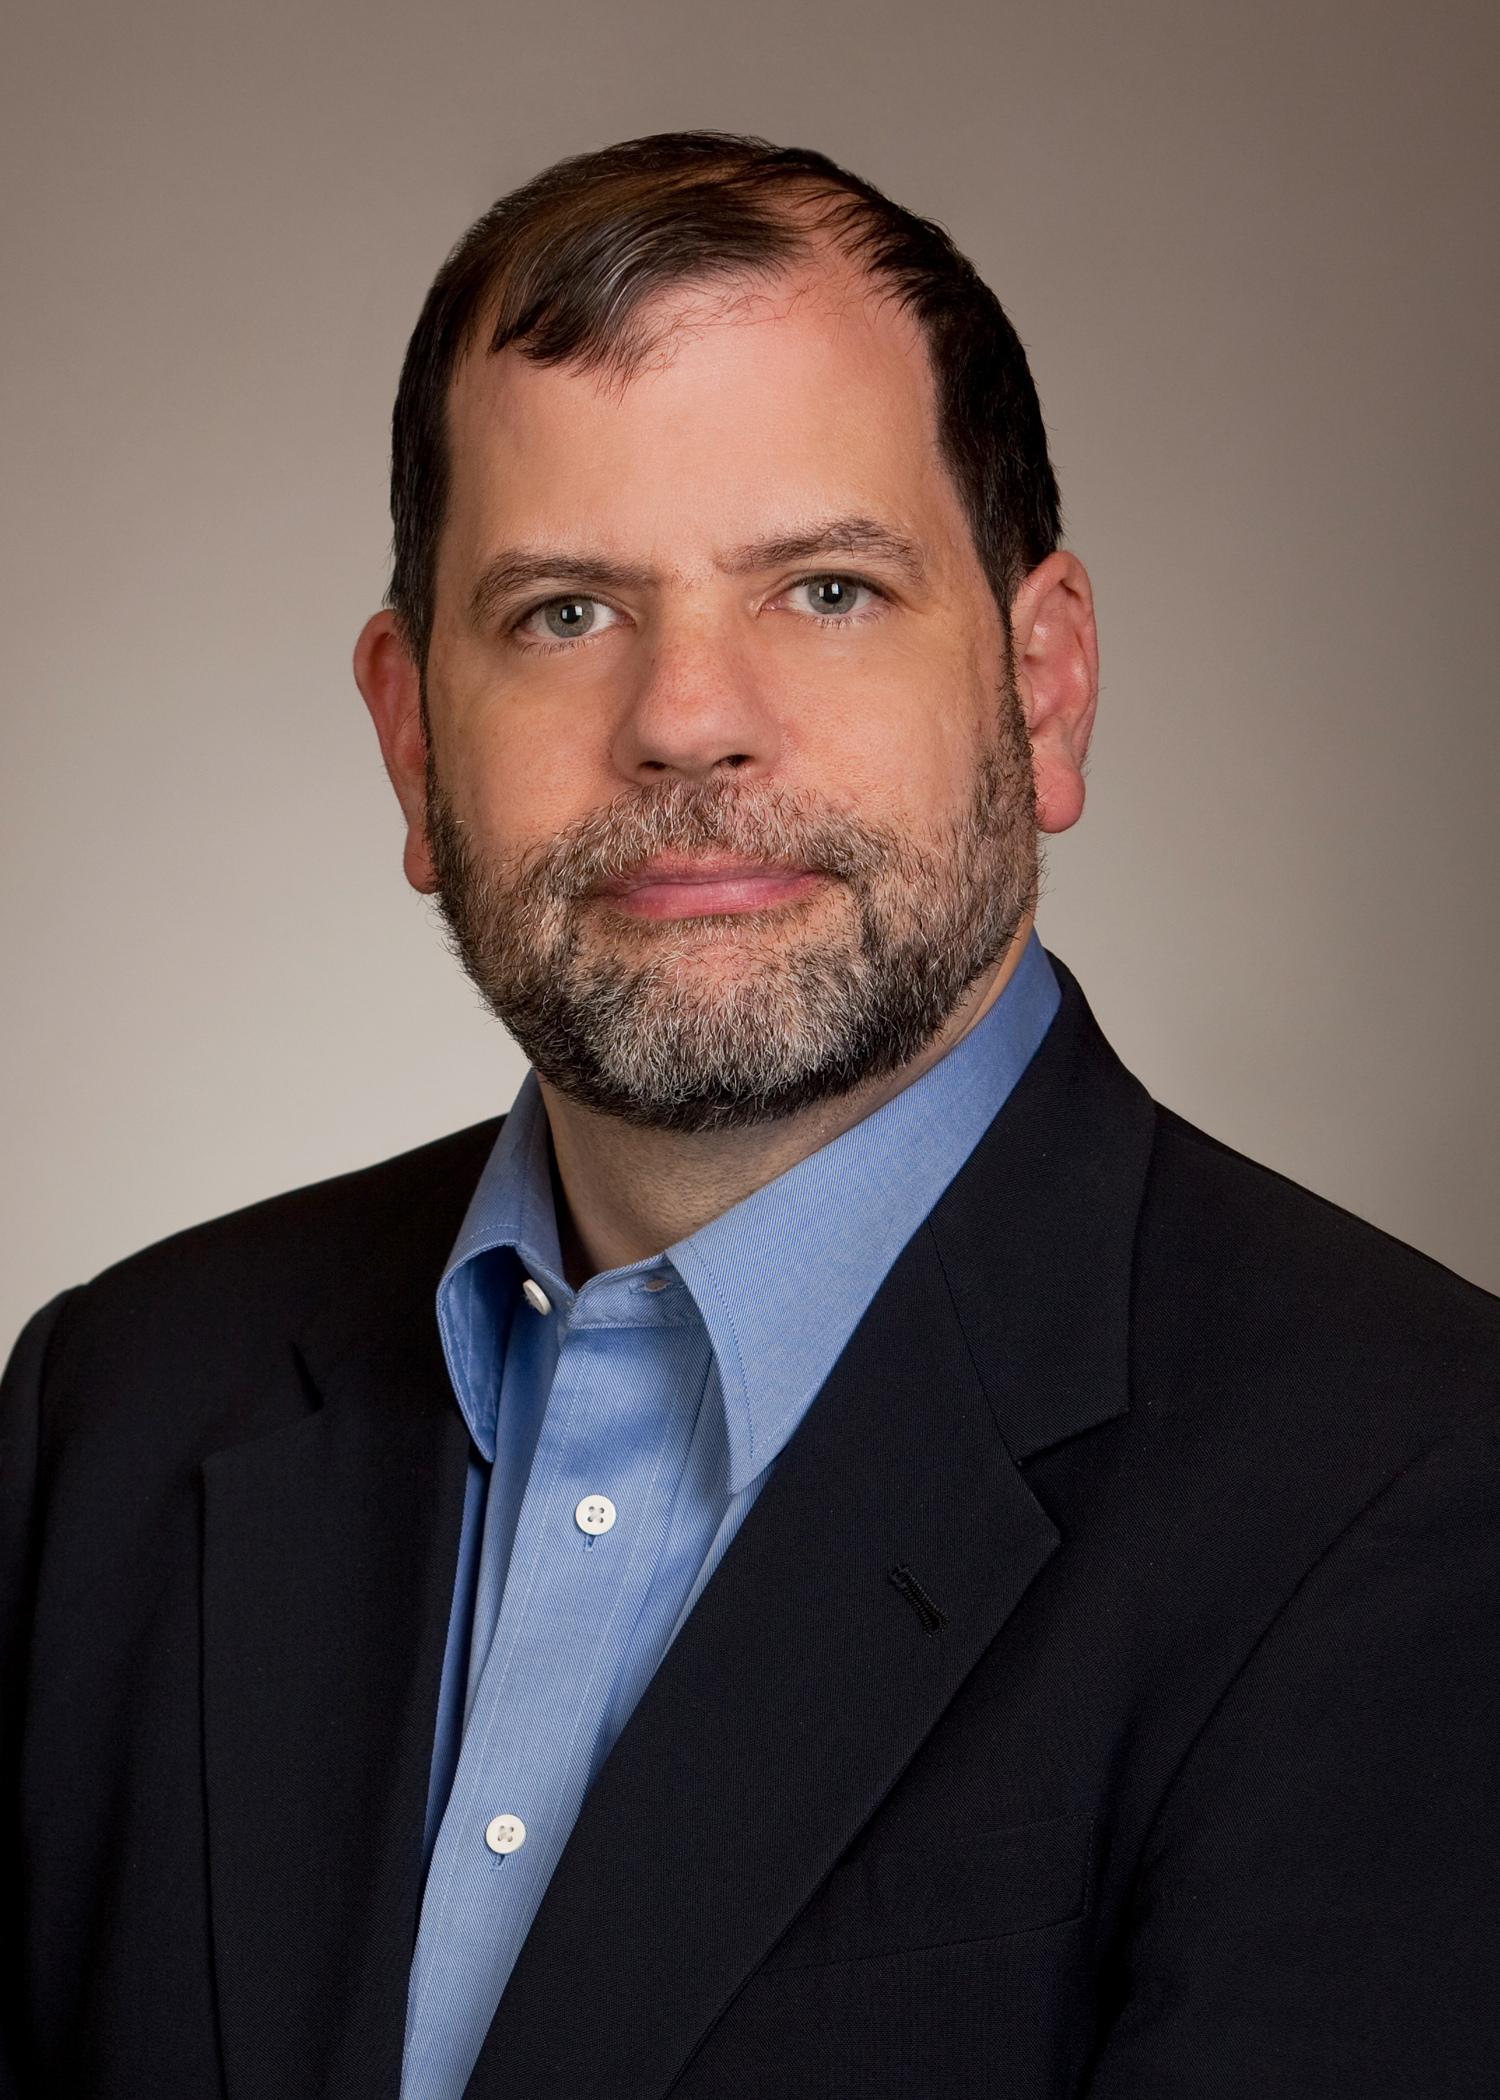 39: Tyler Cowen - Economist and Master Generalist on: Economic Outlook, Social Change, and Future Cities